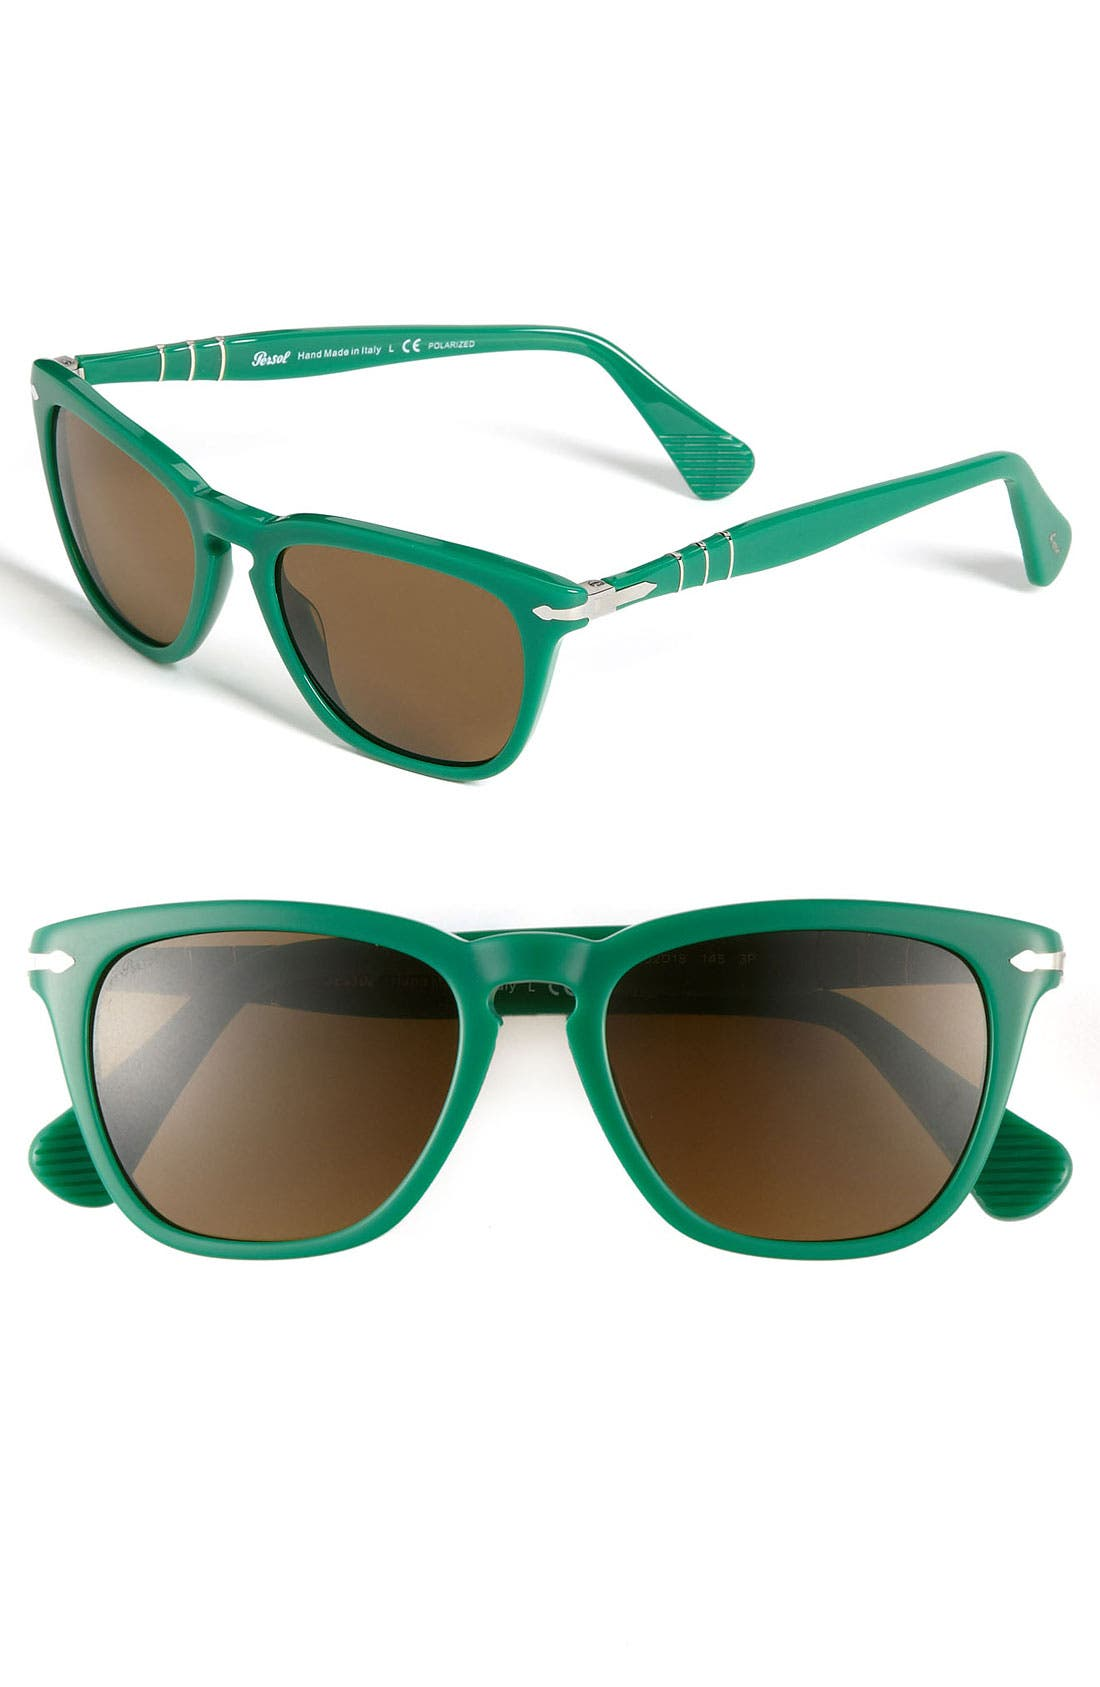 Main Image - Persol 52mm Polarized Retro Sunglasses